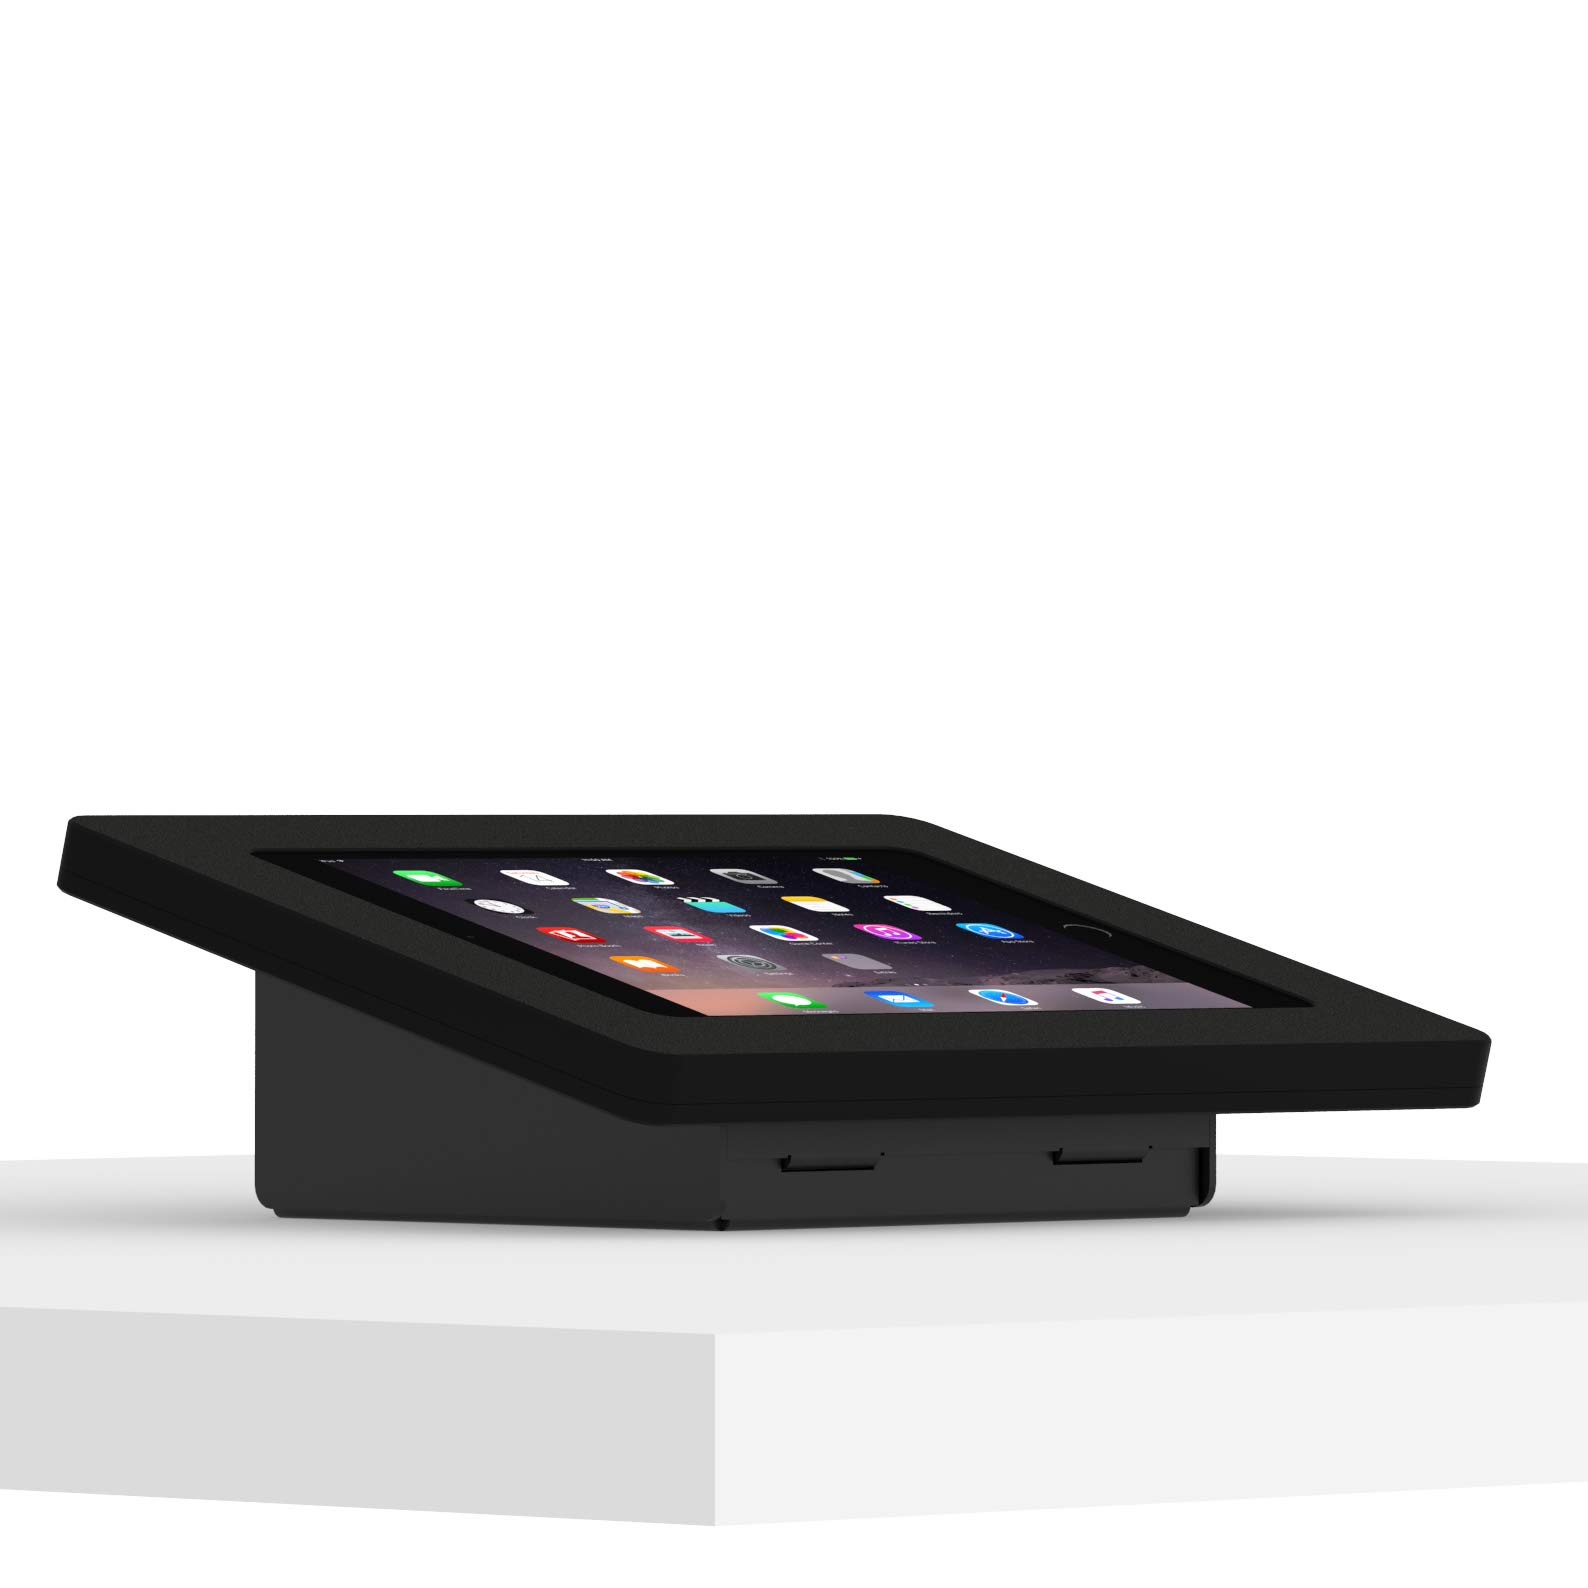 VidaMount Black Enclosure and Fixed Tilted 15° Desk/Surface Mount [Bundle] Compatible with iPad Mini 4 & 5